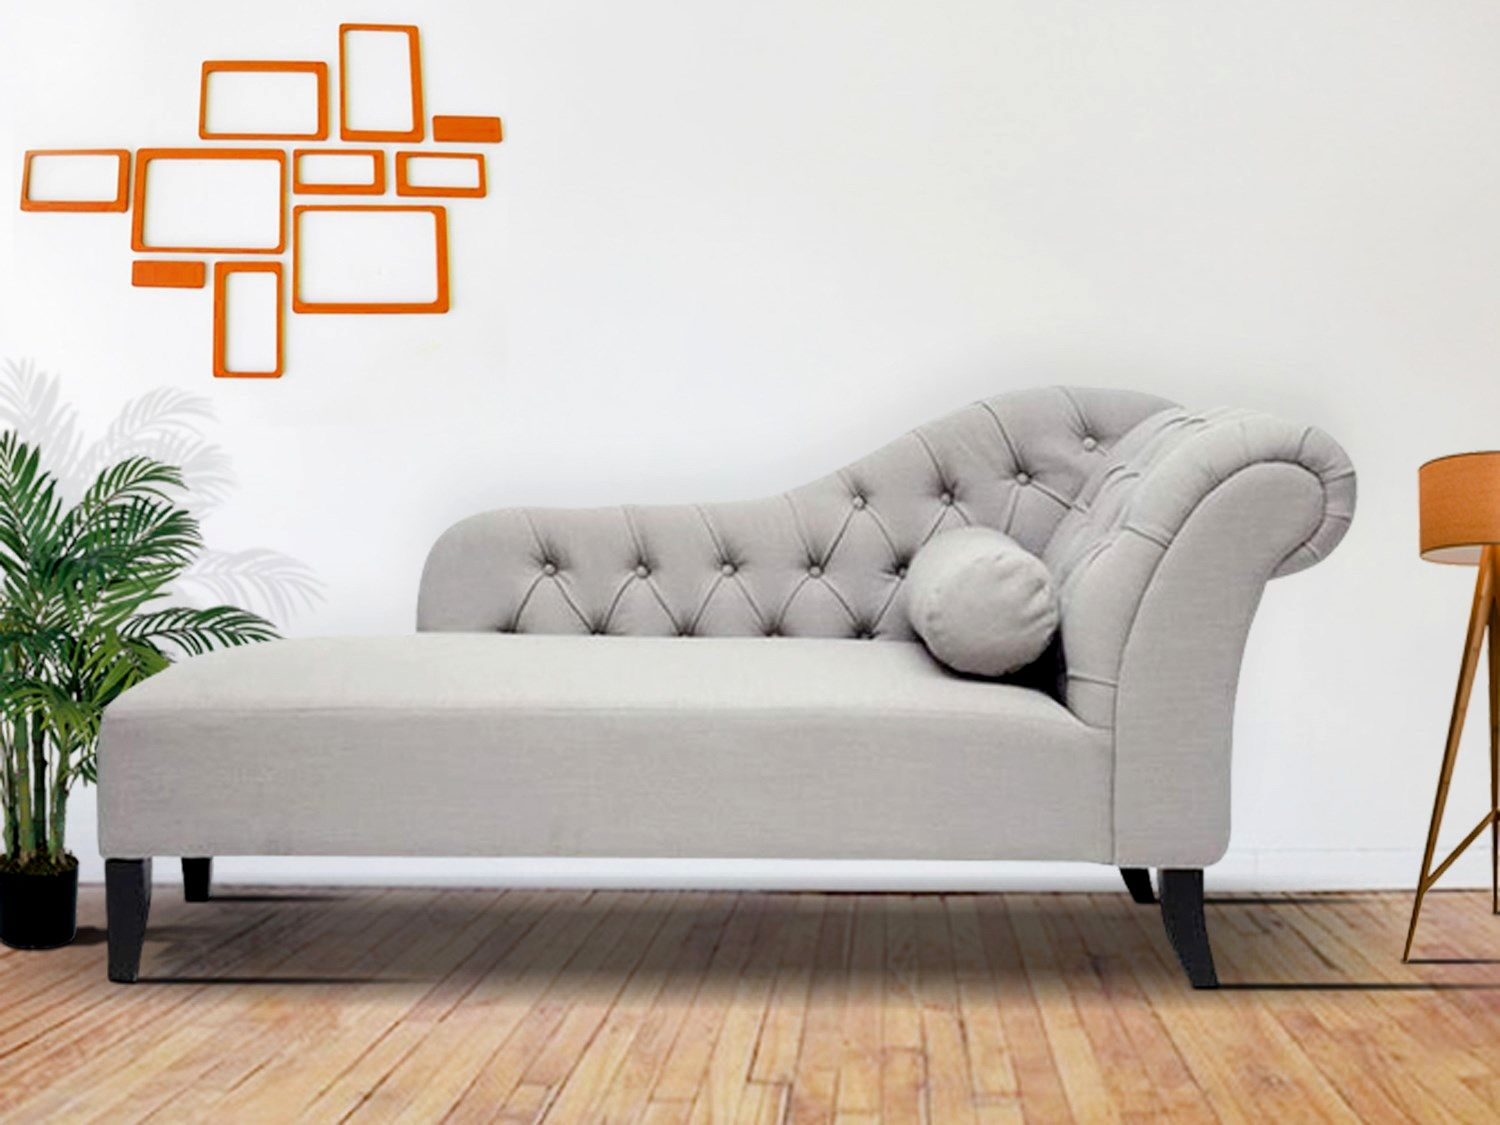 incredible costco sectional sofa plan-Latest Costco Sectional sofa Decoration